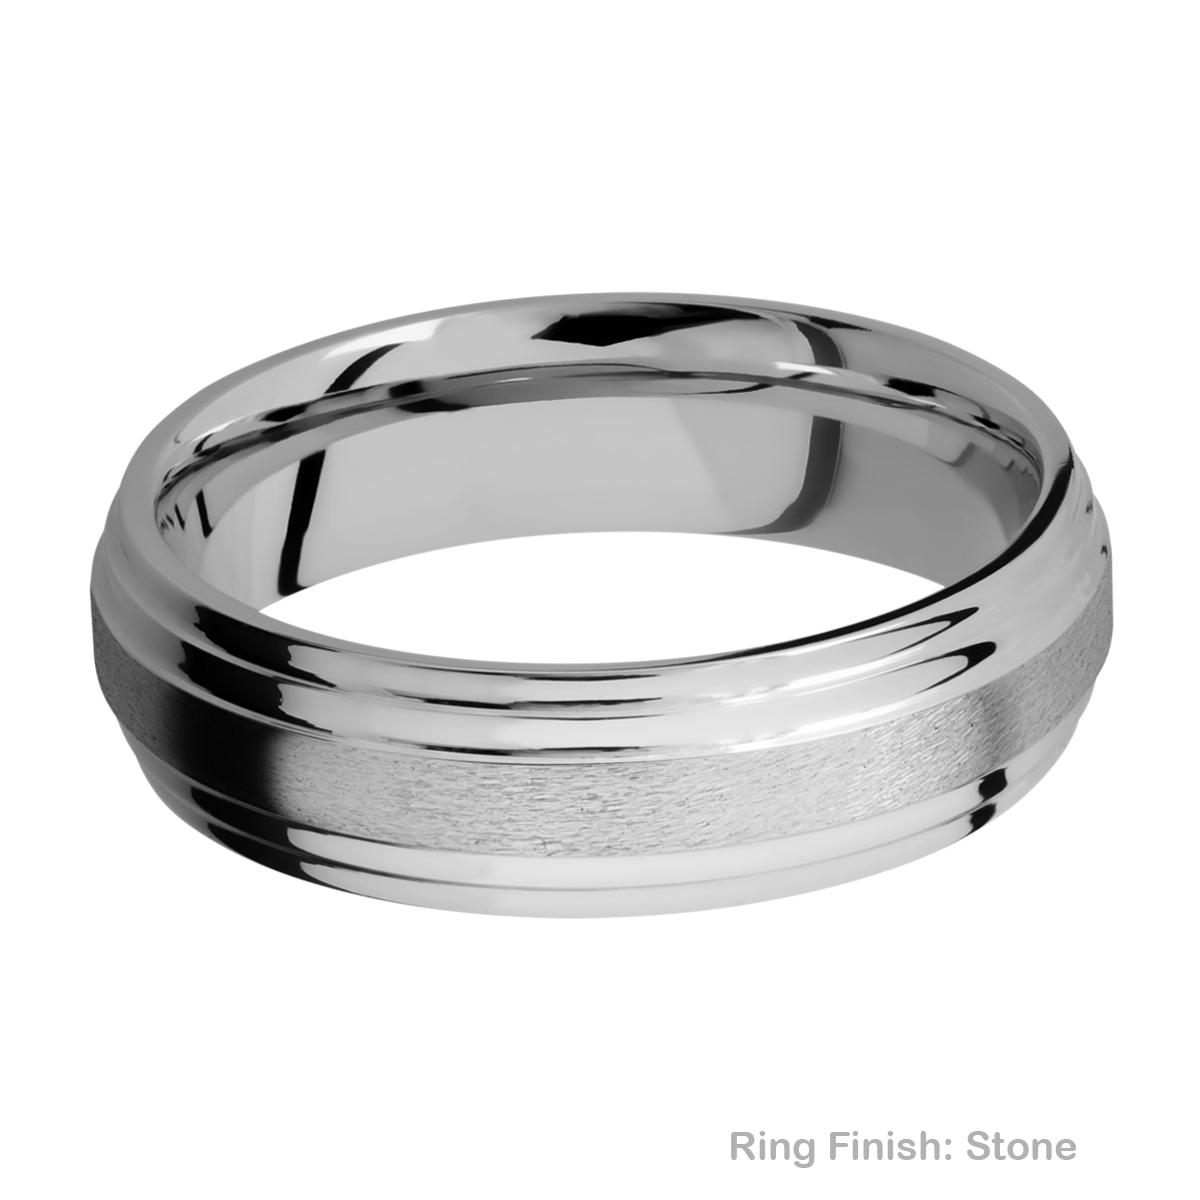 Lashbrook 6F2S Titanium Wedding Ring or Band Alternative View 7